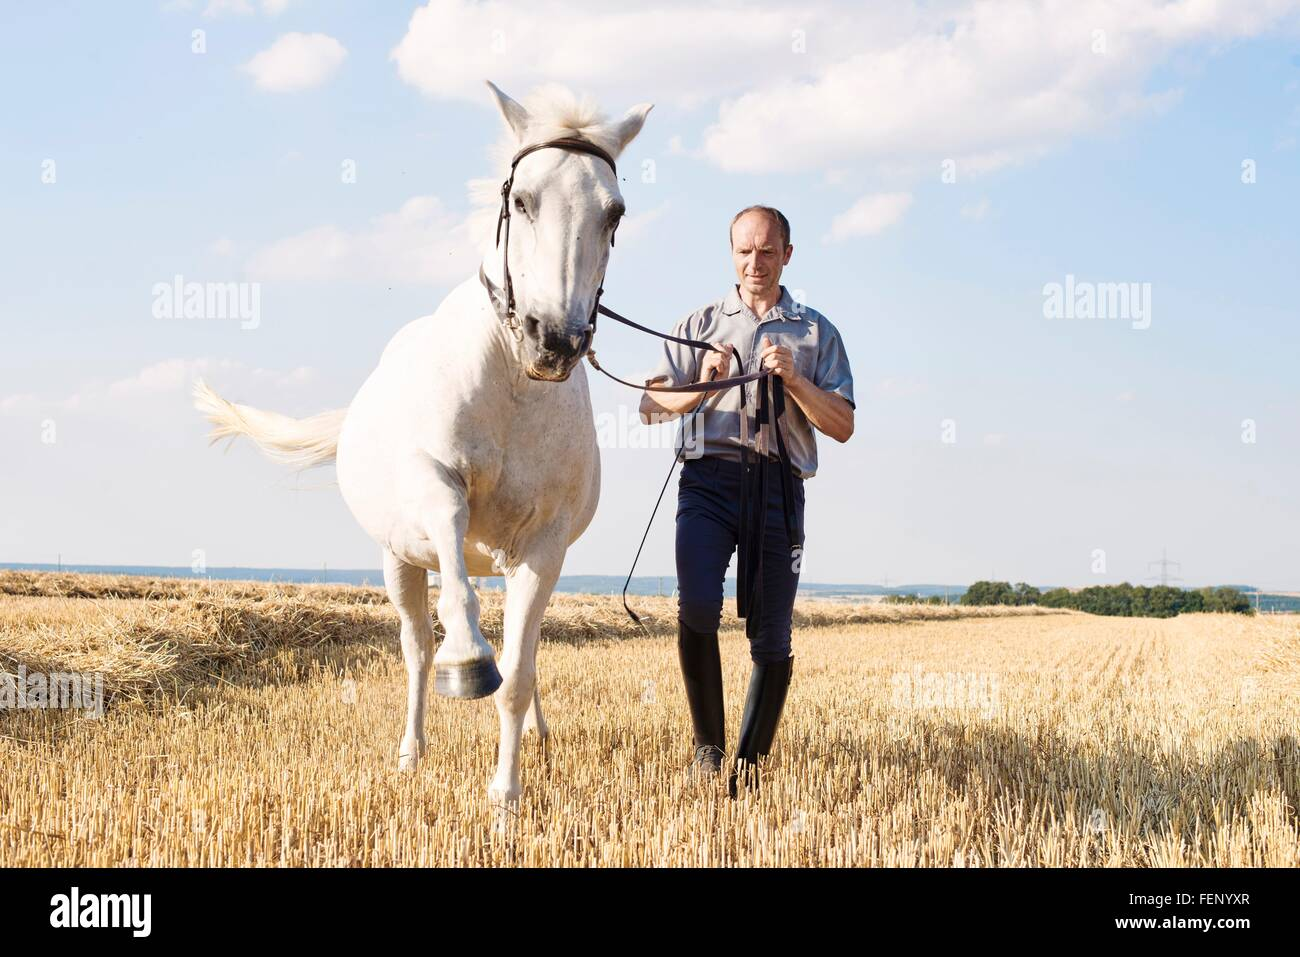 Man training trotting white horse in field - Stock Image